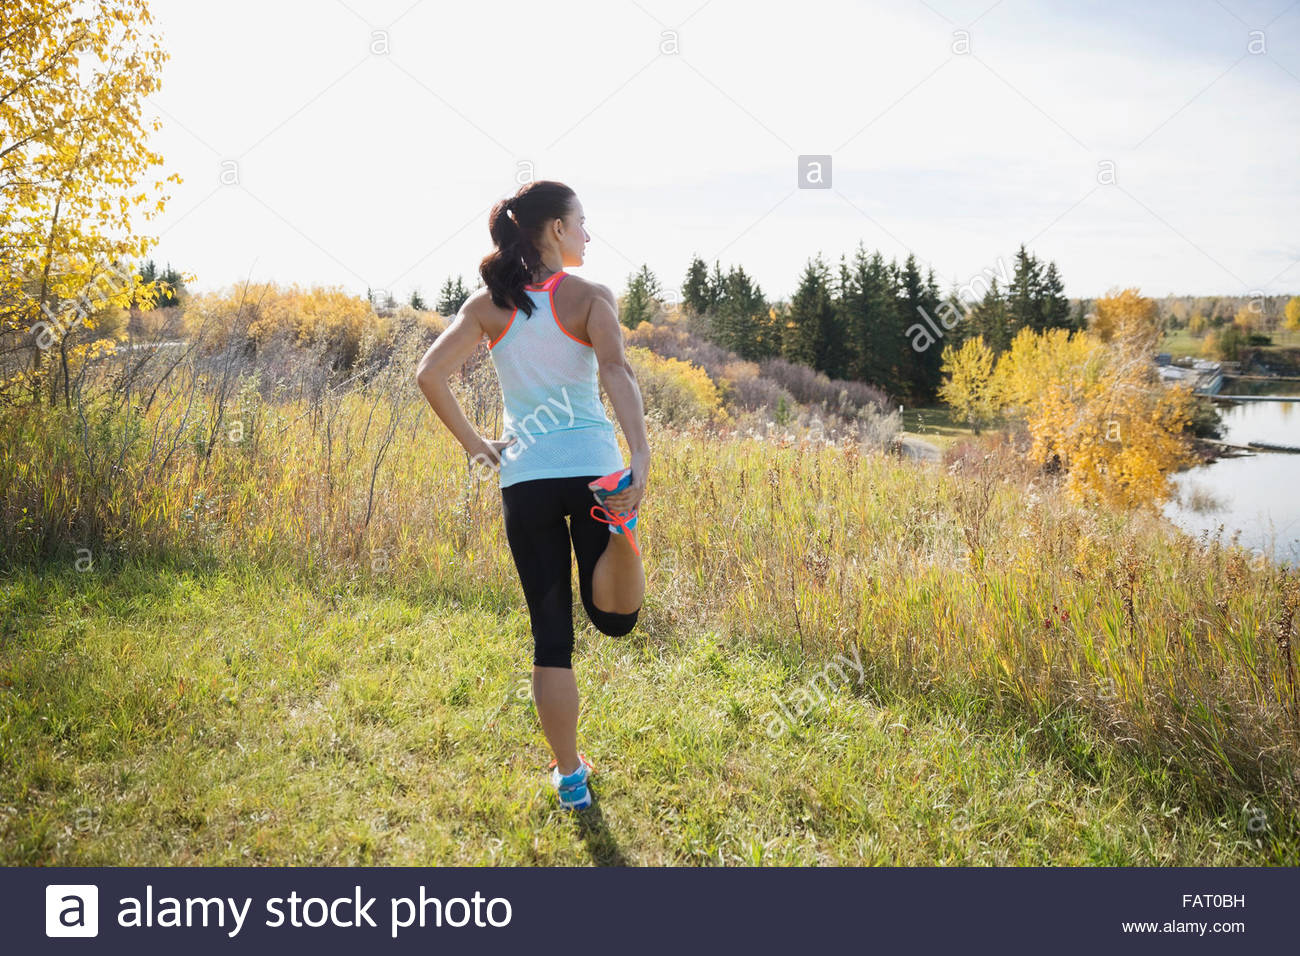 Jogger stretching leg in autumn field - Stock Image